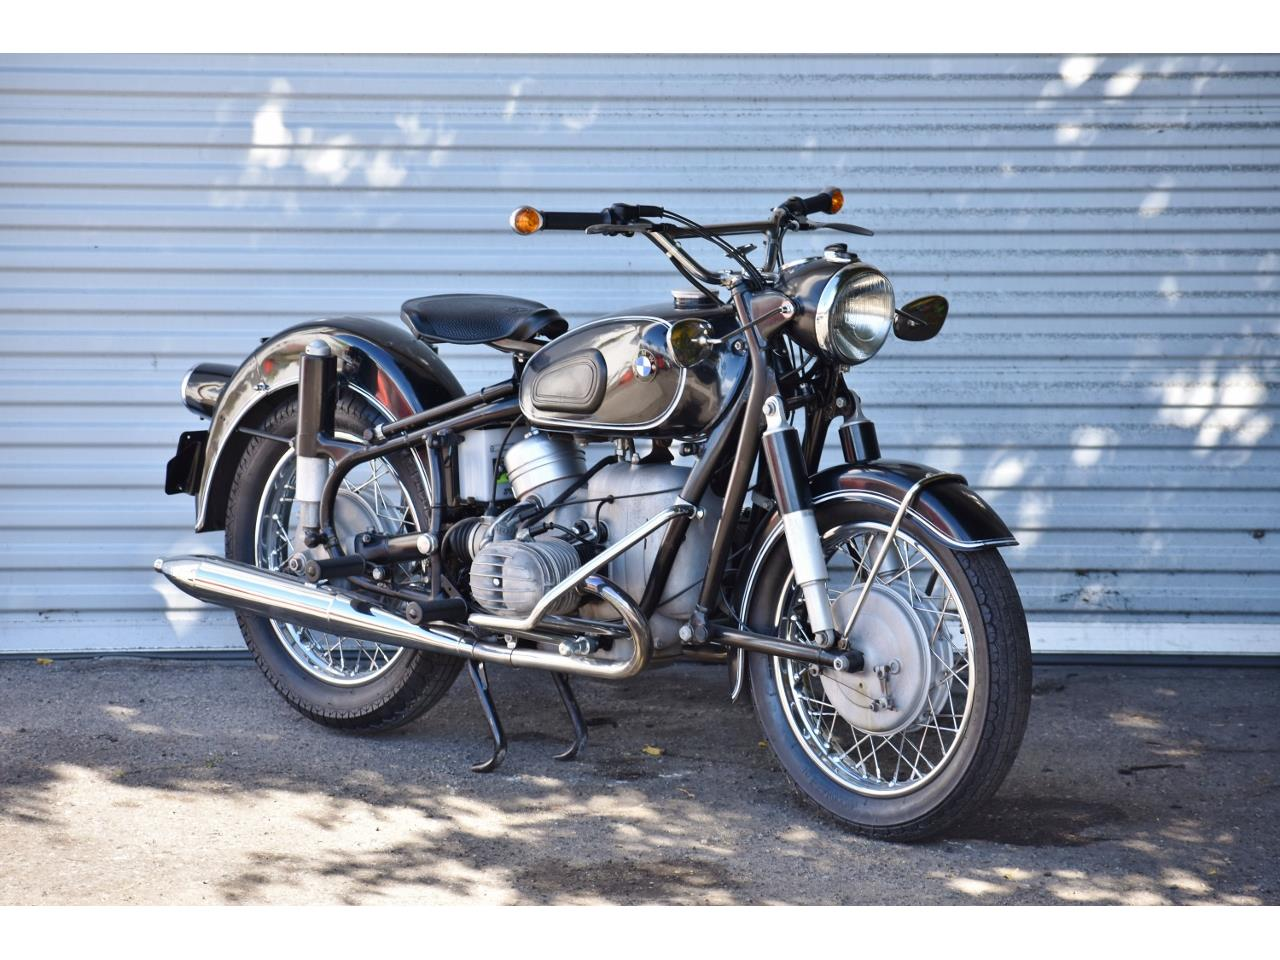 1965 Bmw Motorcycle For Sale Classiccars Com Cc 1203552